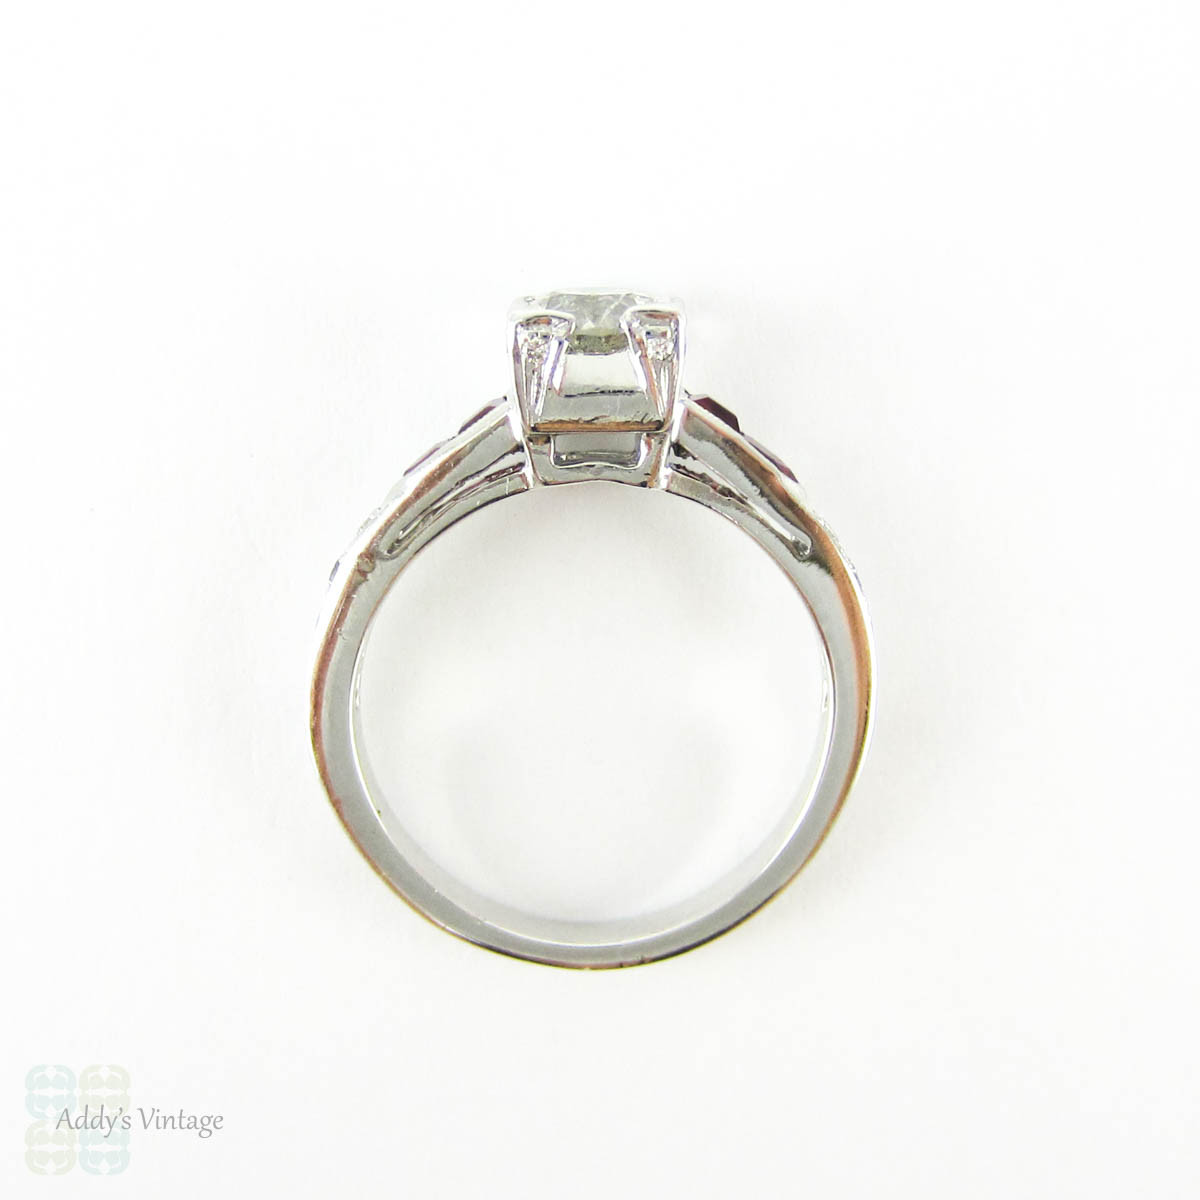 greenwich european engagement diamond rings cut vintage old st ring